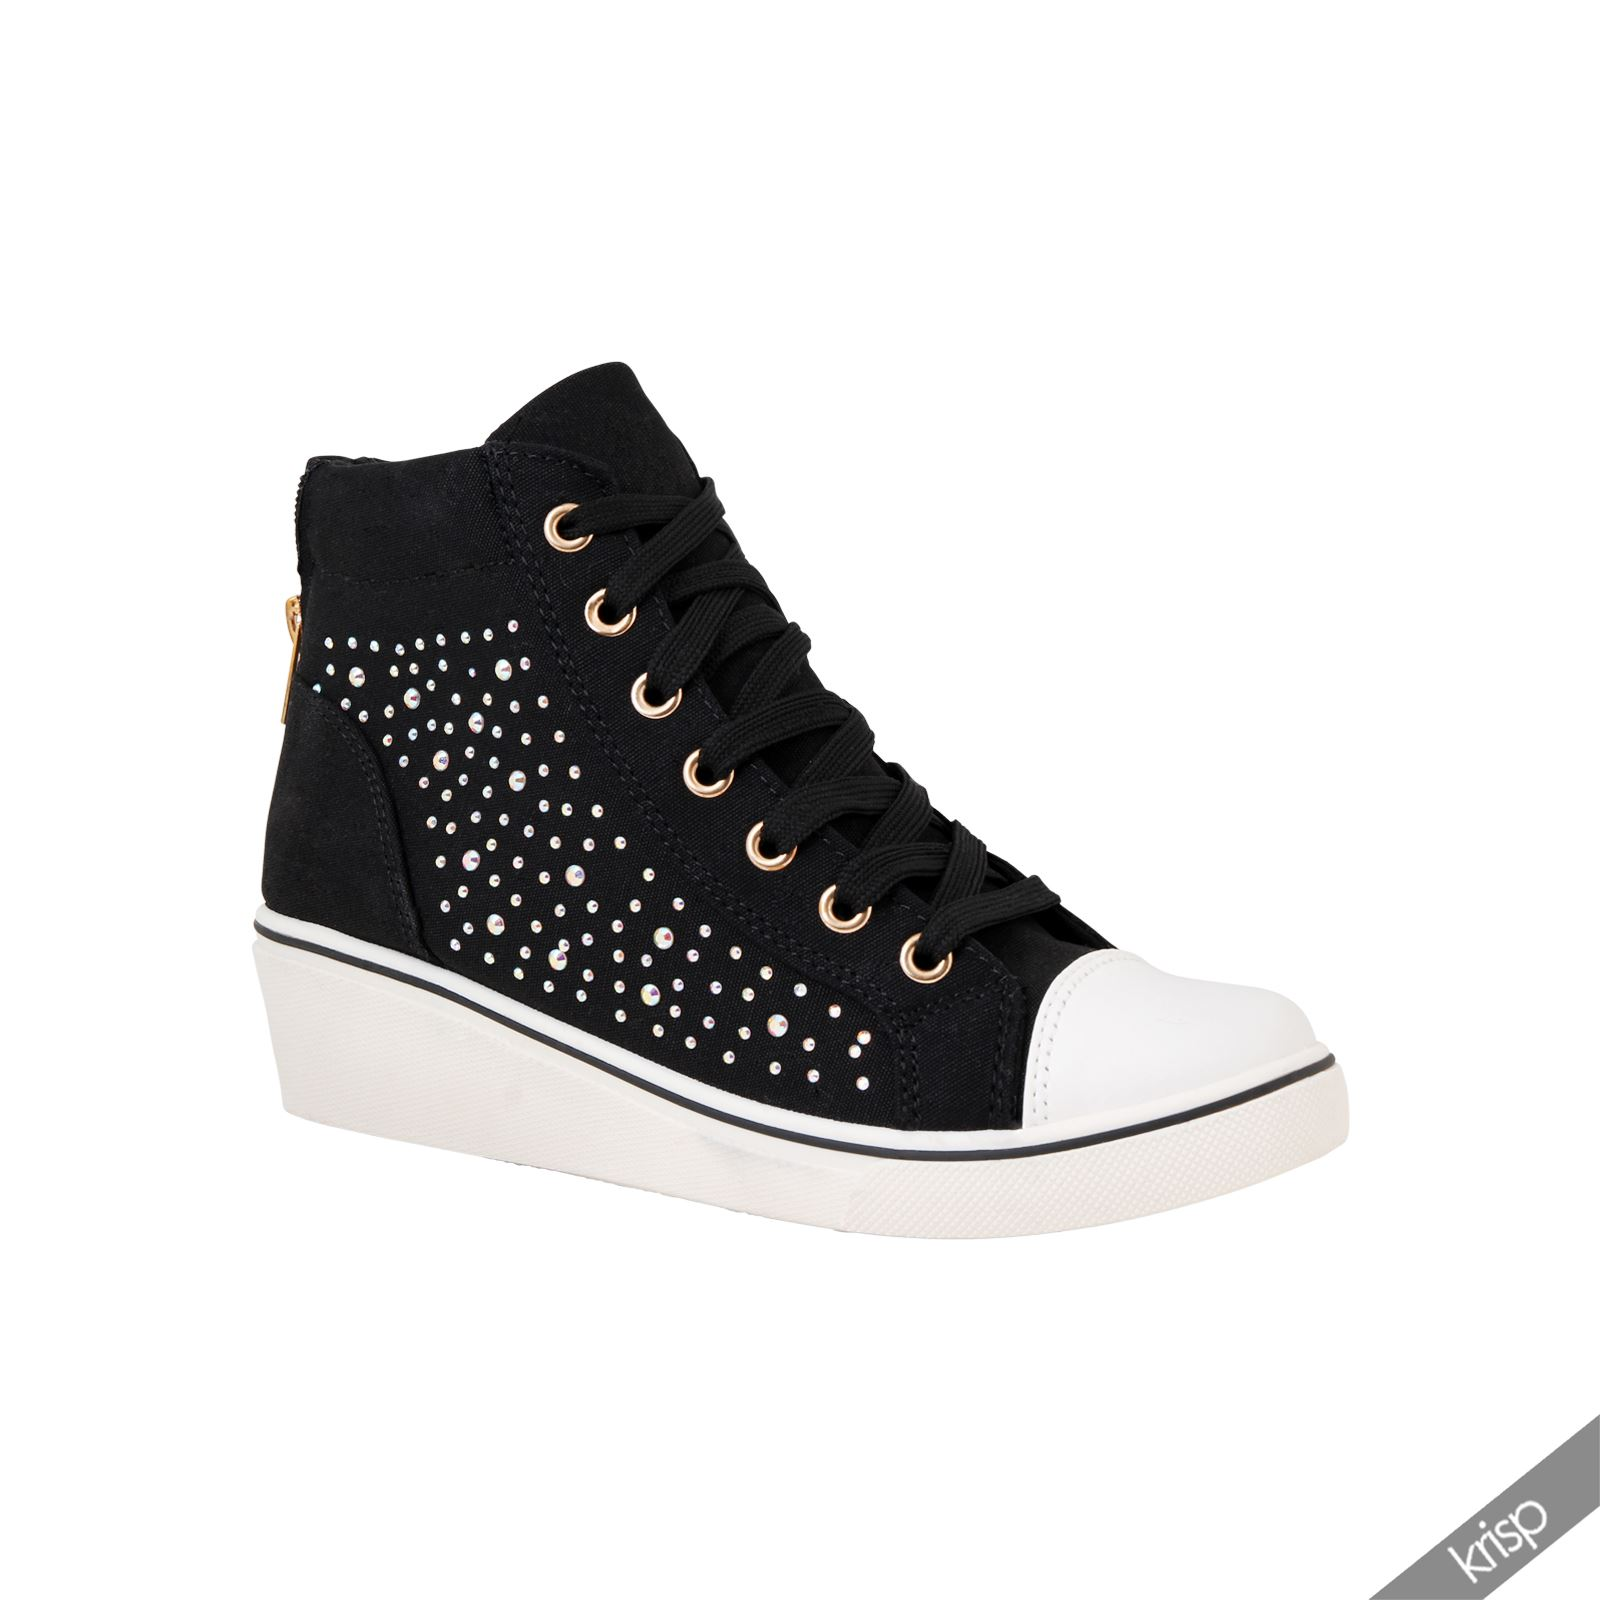 High Heel Wedge Sneakers For Women